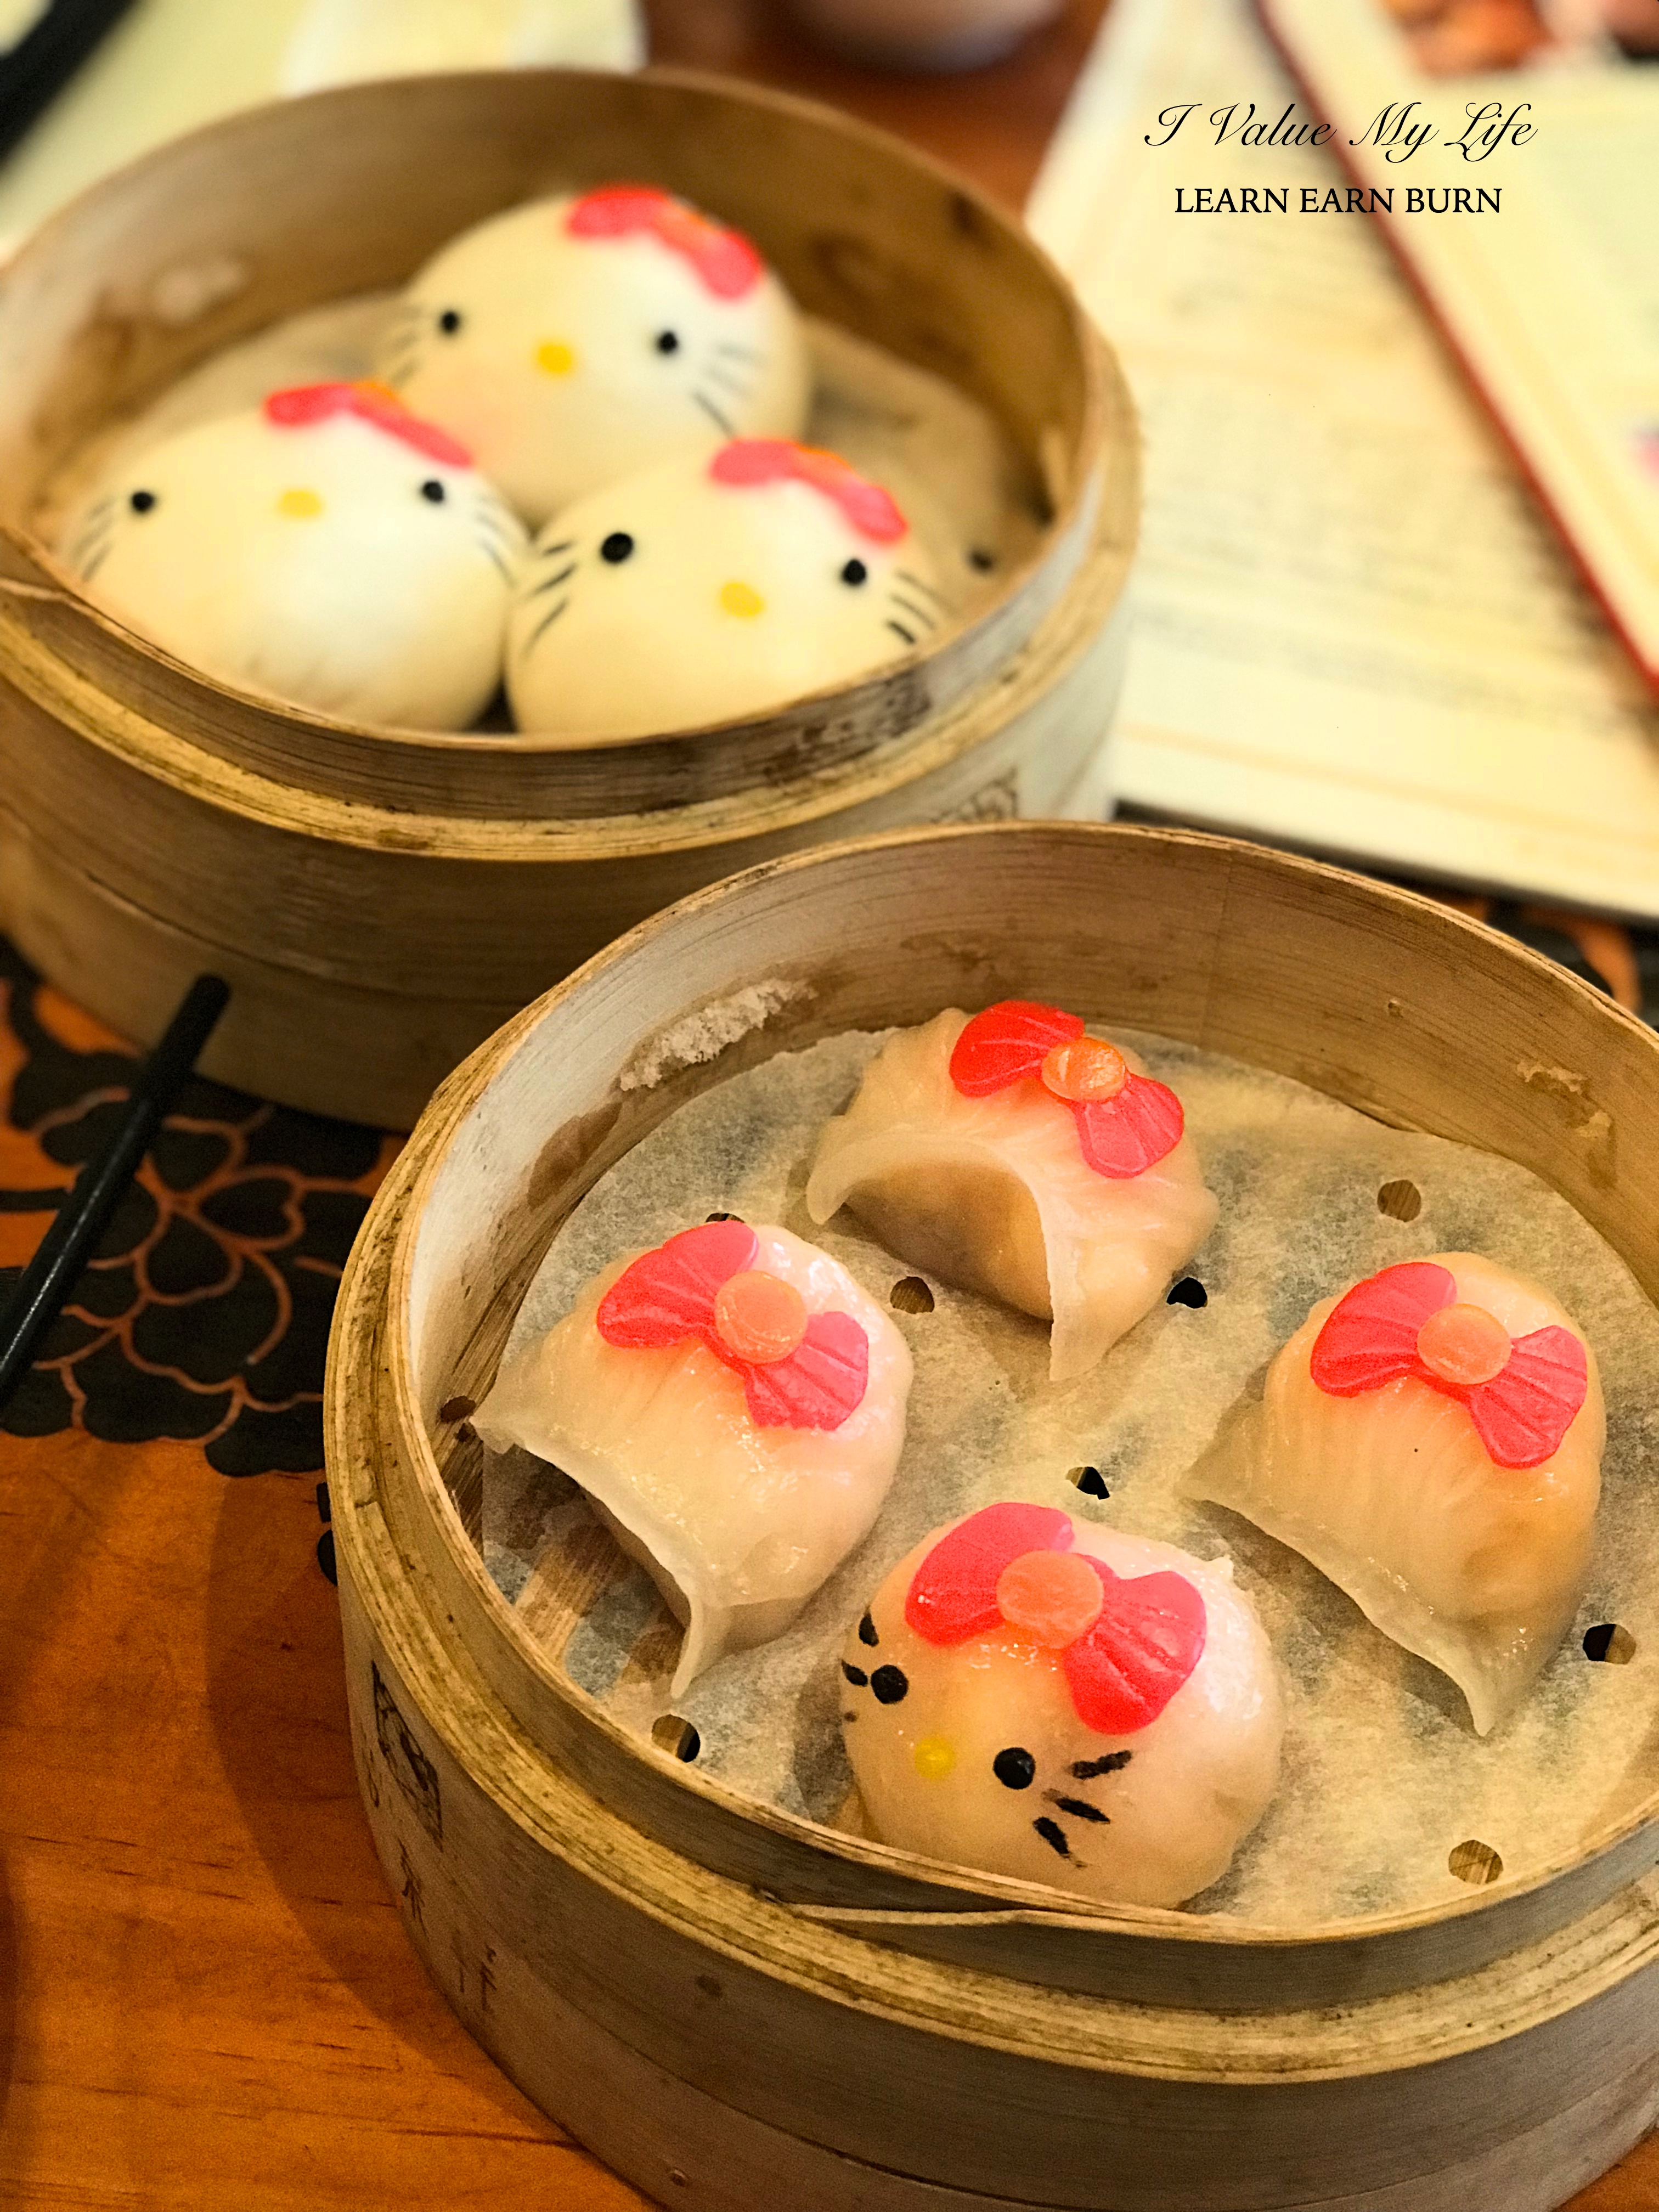 Hello Kitty Cafe In Jordan Offers Dim Sum I Value My Life